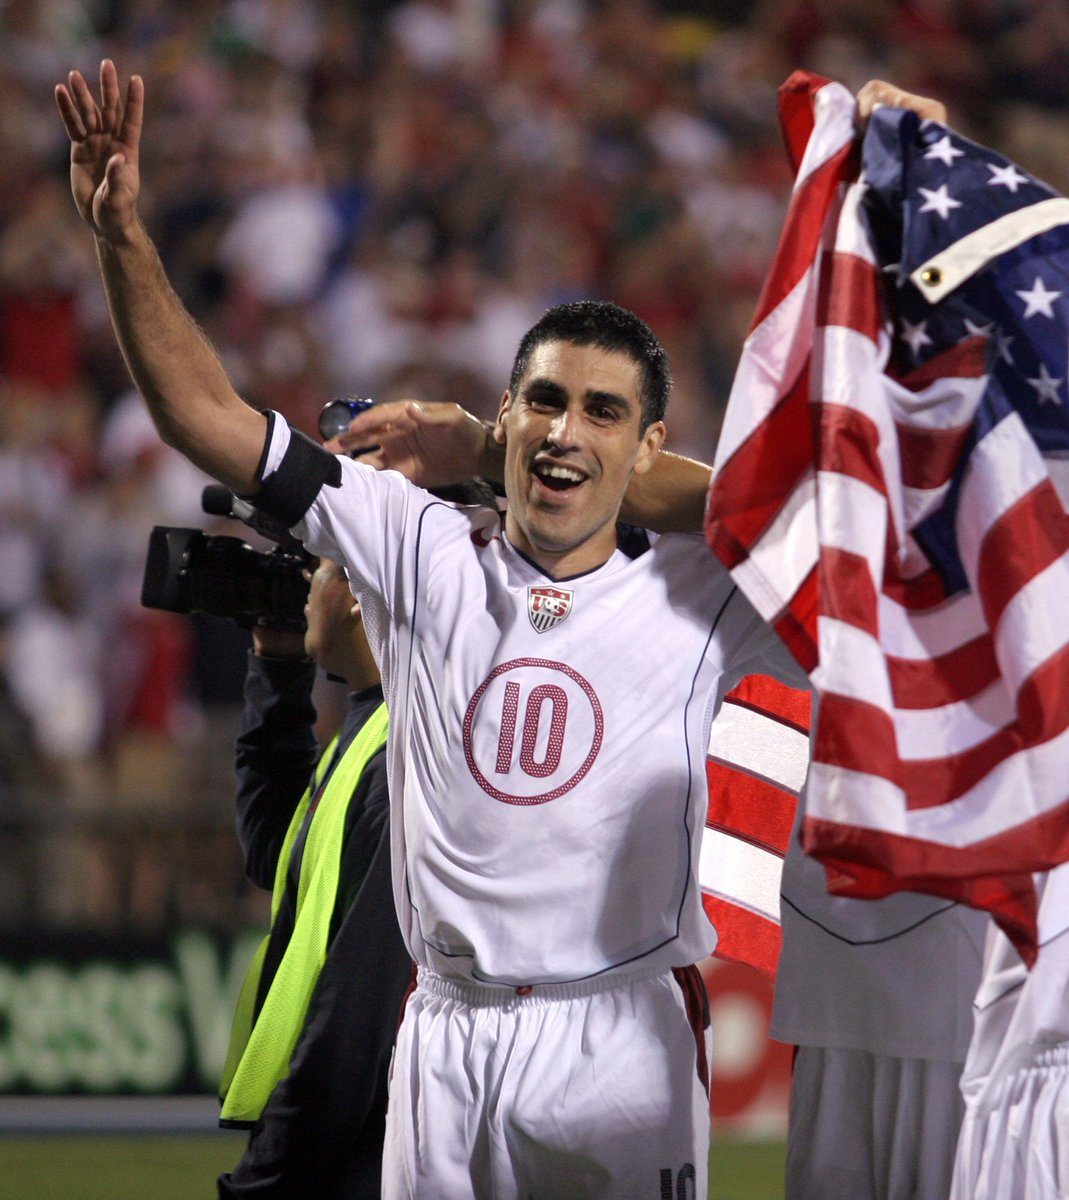 112 🇺🇸caps. 4 @FIFAWorldCup's and wore the armband at 2 of them. Happy Birthday, Claudio Reyna!